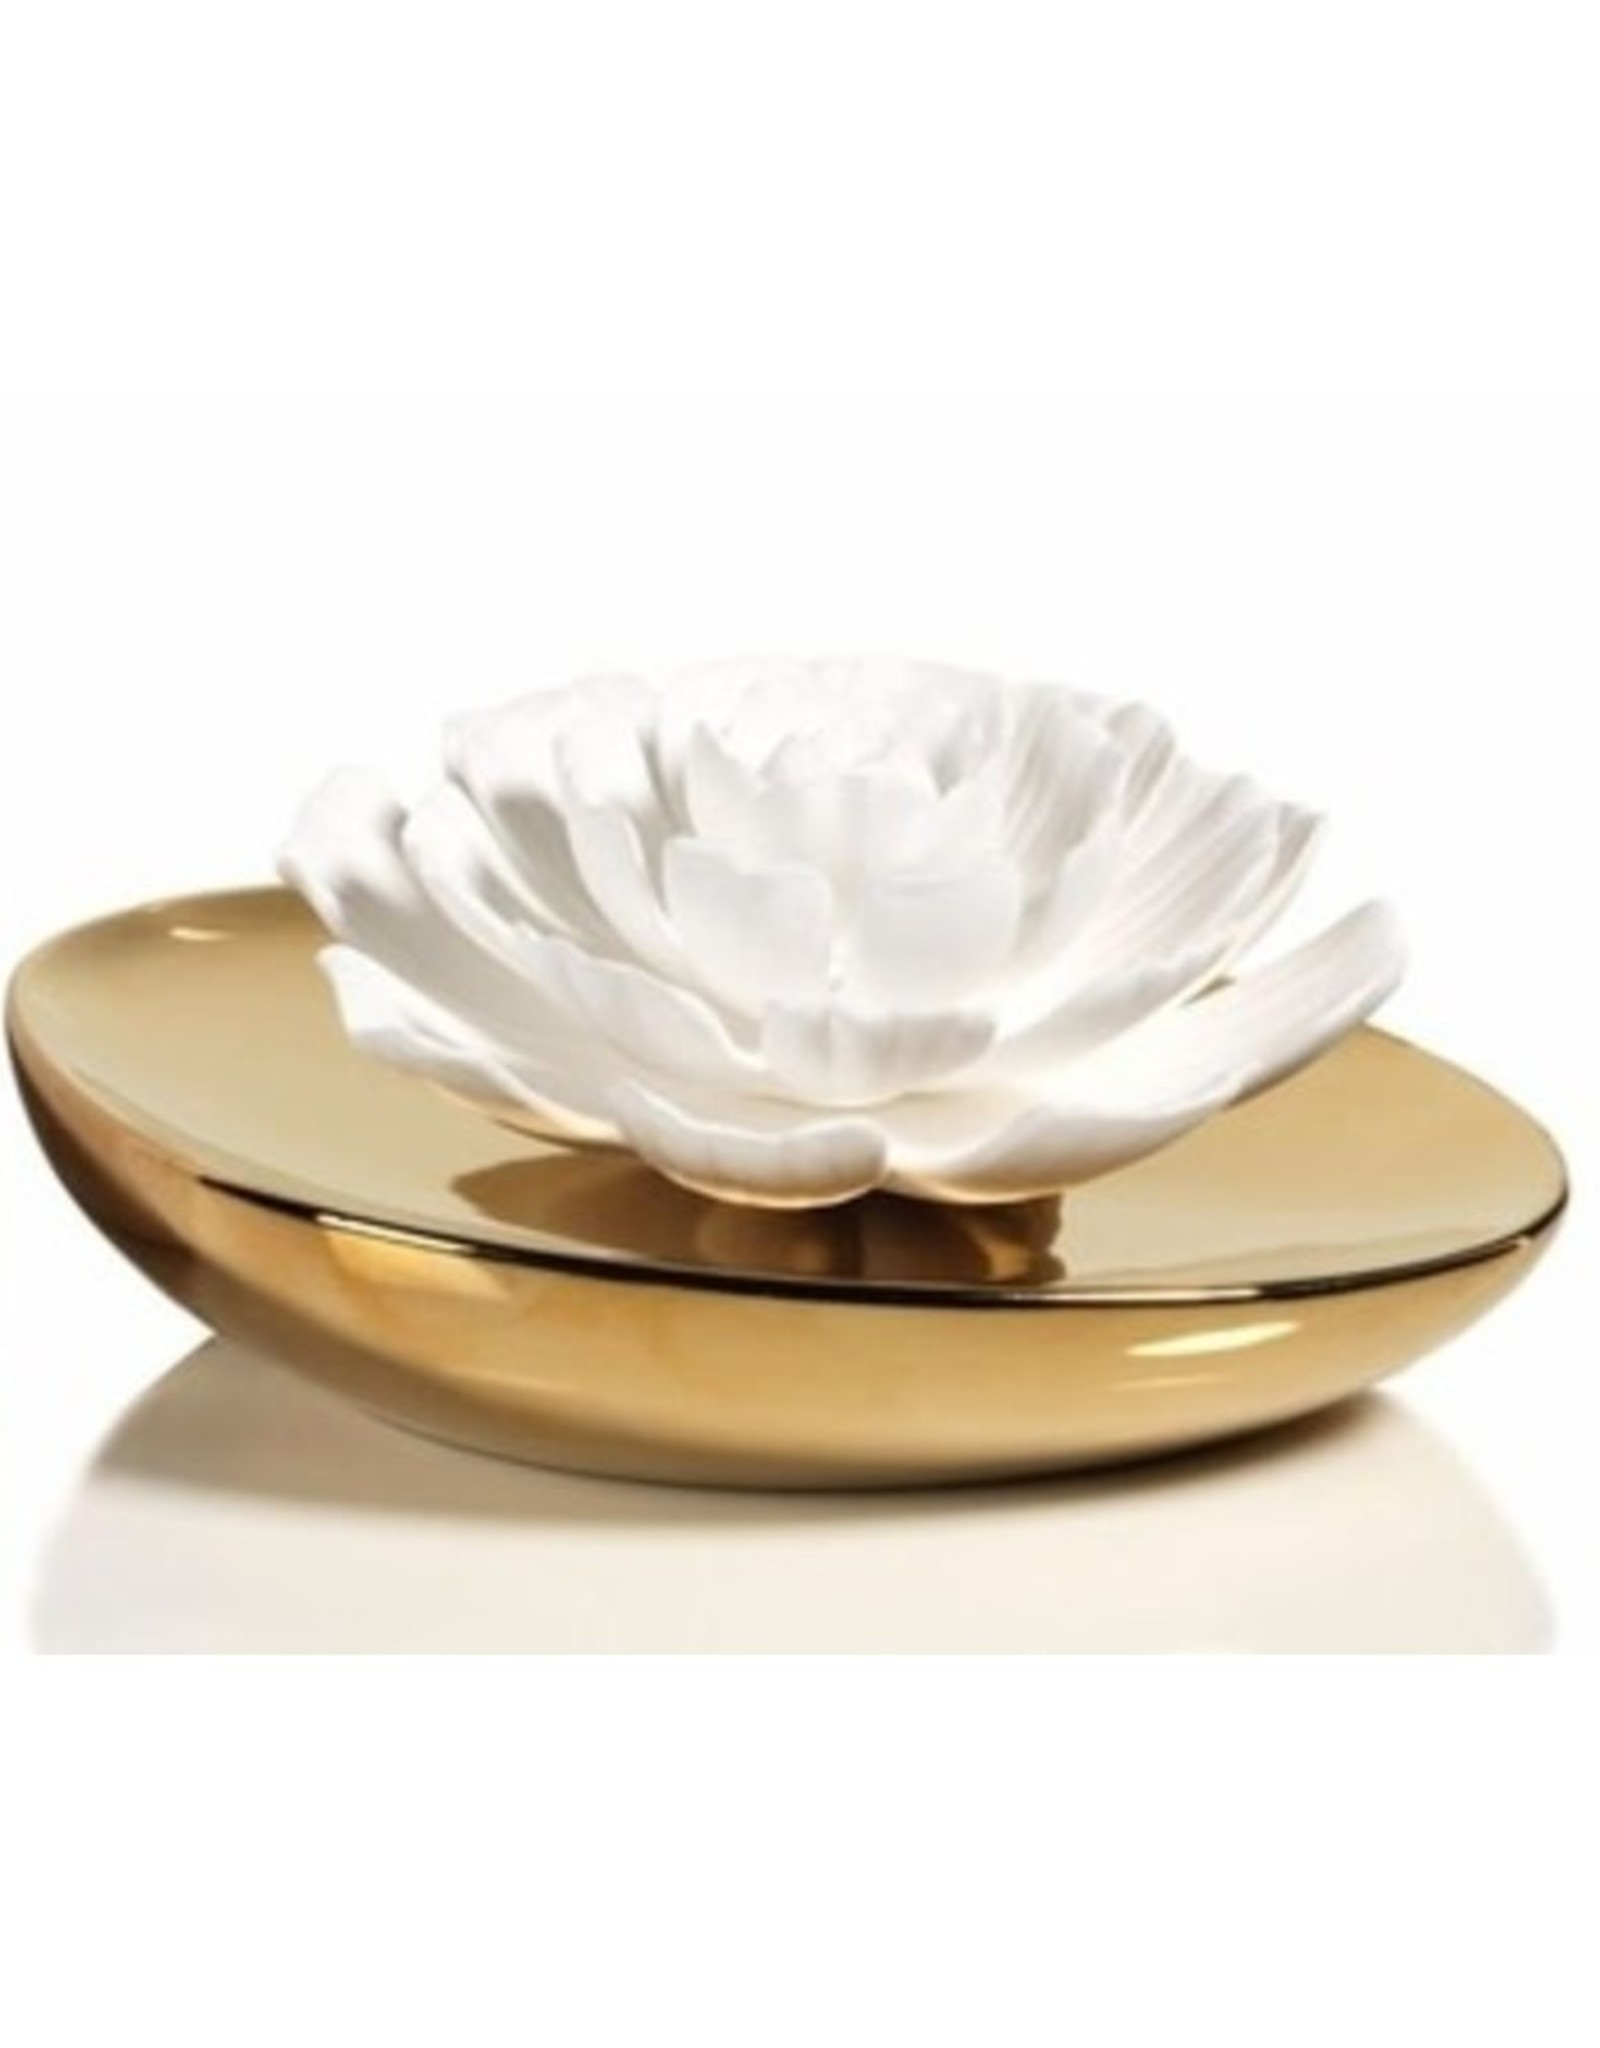 Zdx Dream Porcelain Flower Diffuser-Moroccan Peony